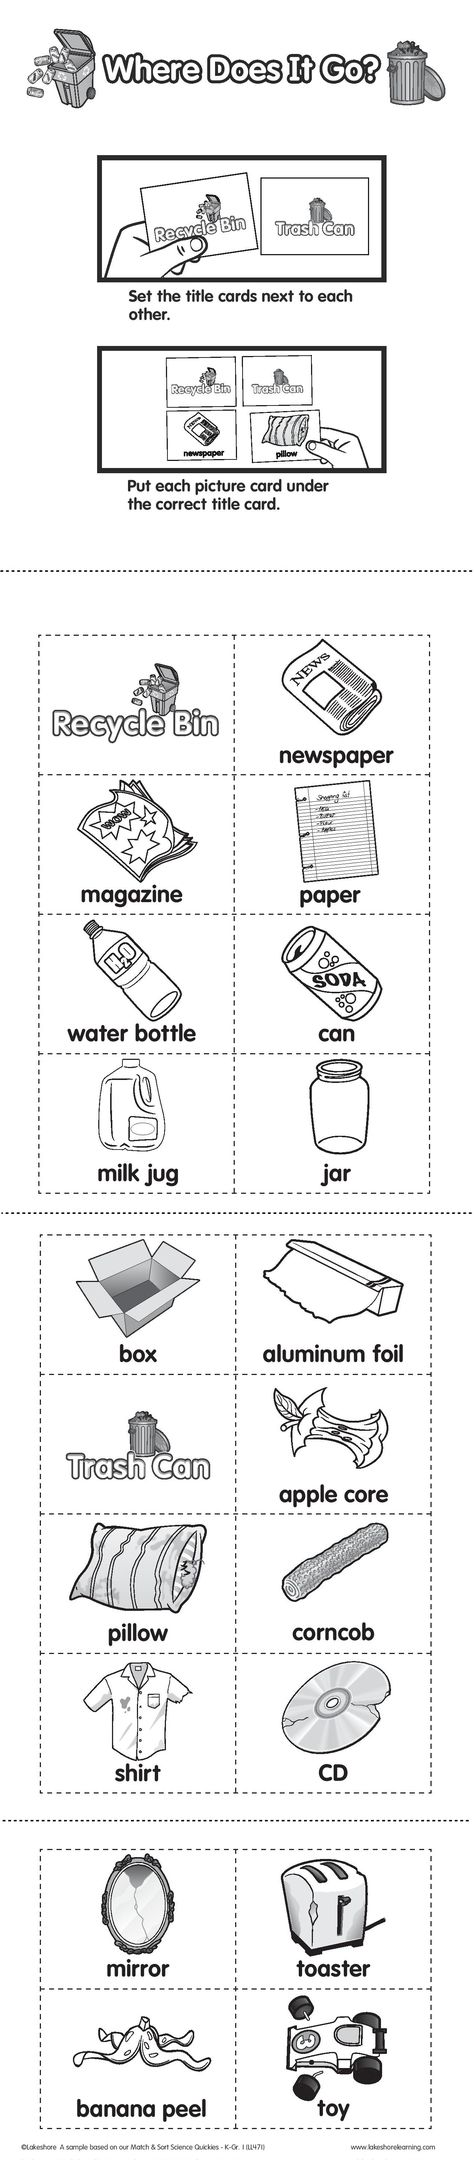 Reduce Reuse Recycle Worksheets Saferbrowser Yahoo Image Search